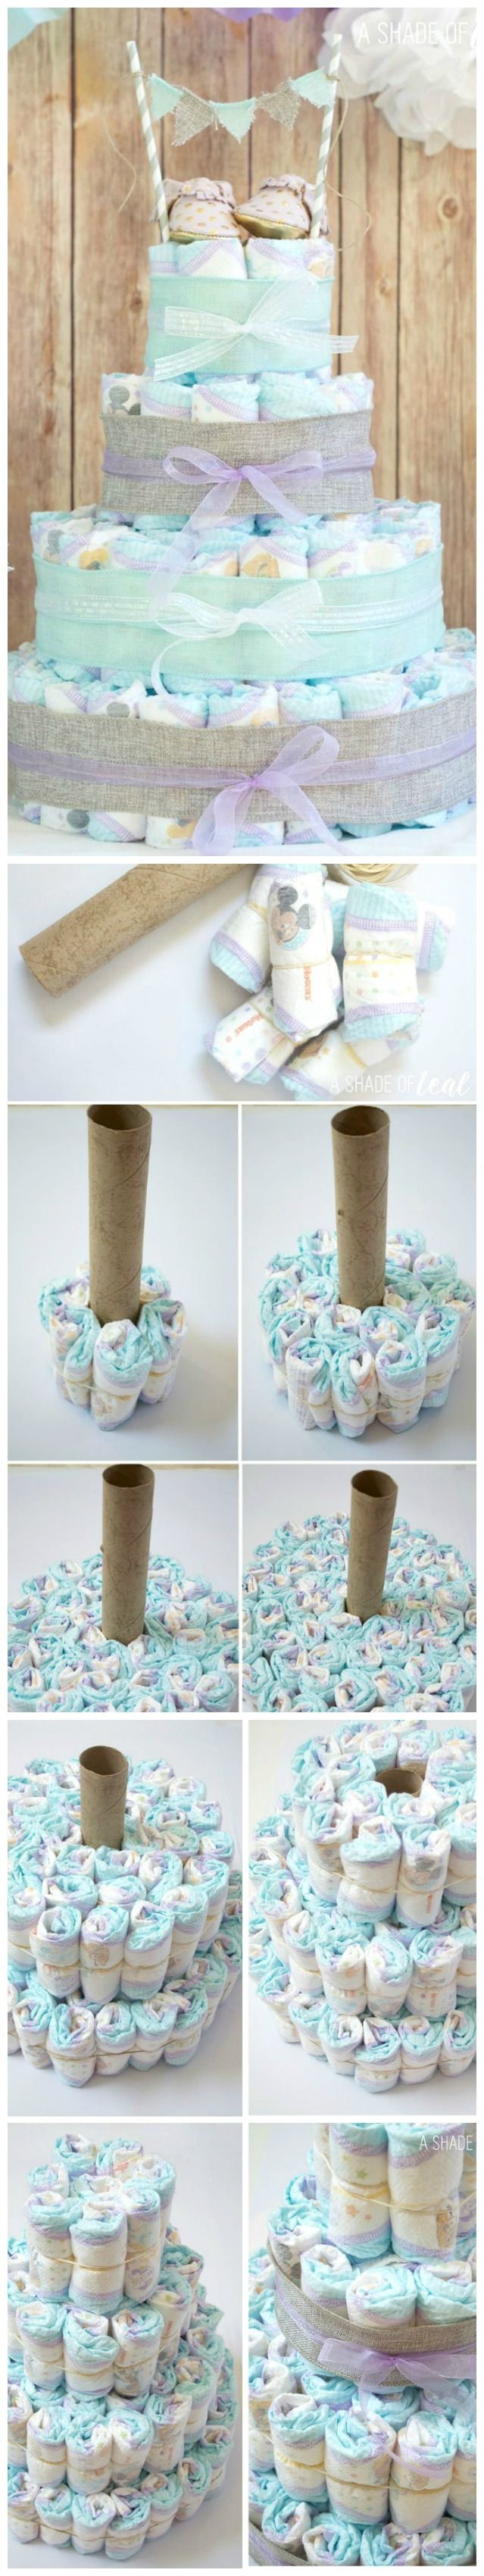 How To Make a Diaper Rustic Glam Cake ~ Making diaper cakes is so much fun, especially when you can make it unique to fit the new mom's style.